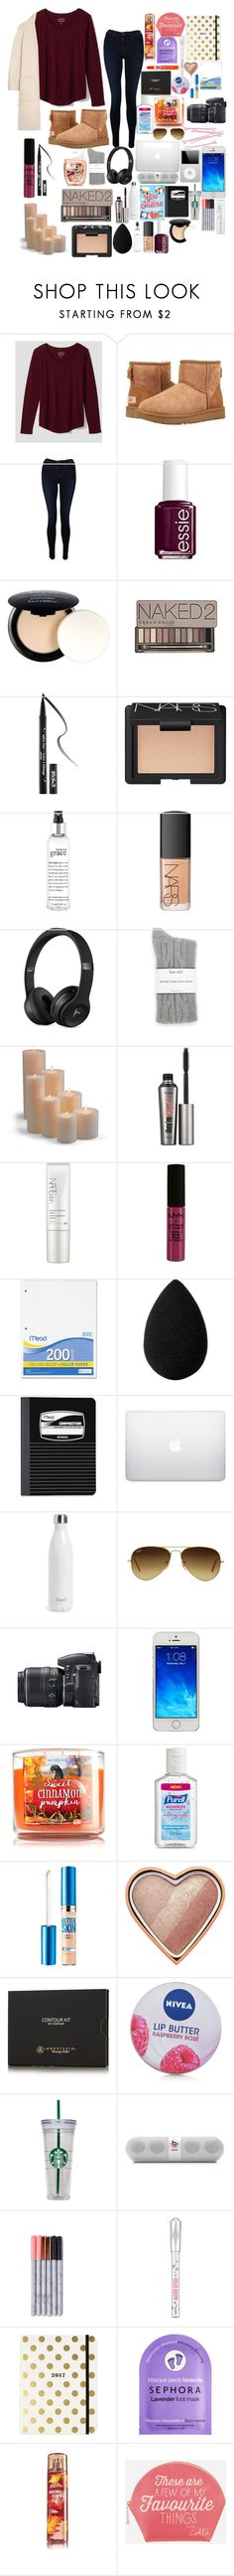 """""""i won't be making icons any more"""" by starry-night2021 ❤ liked on Polyvore featuring LOFT, UGG, J Brand, Essie, NYX, Urban Decay, Kat Von D, NARS Cosmetics, philosophy and Splendid"""